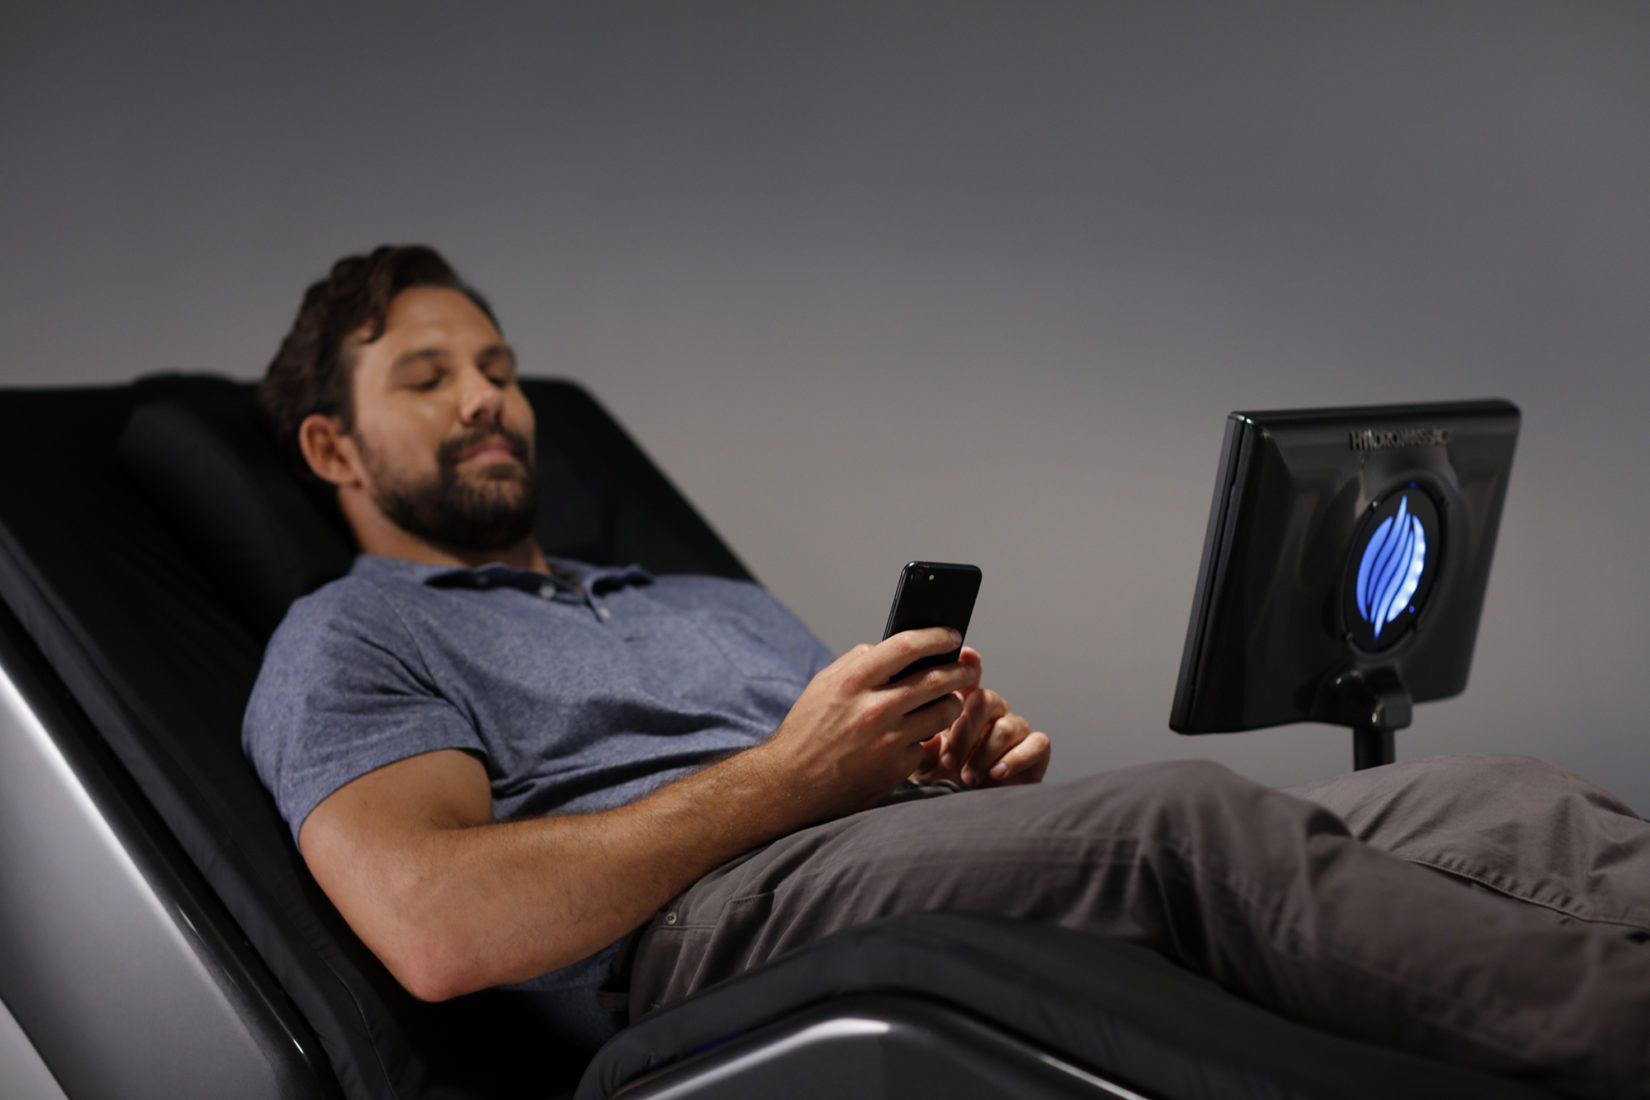 Man relaxing and working on his phone while using a HydroMassage Lounge 440X